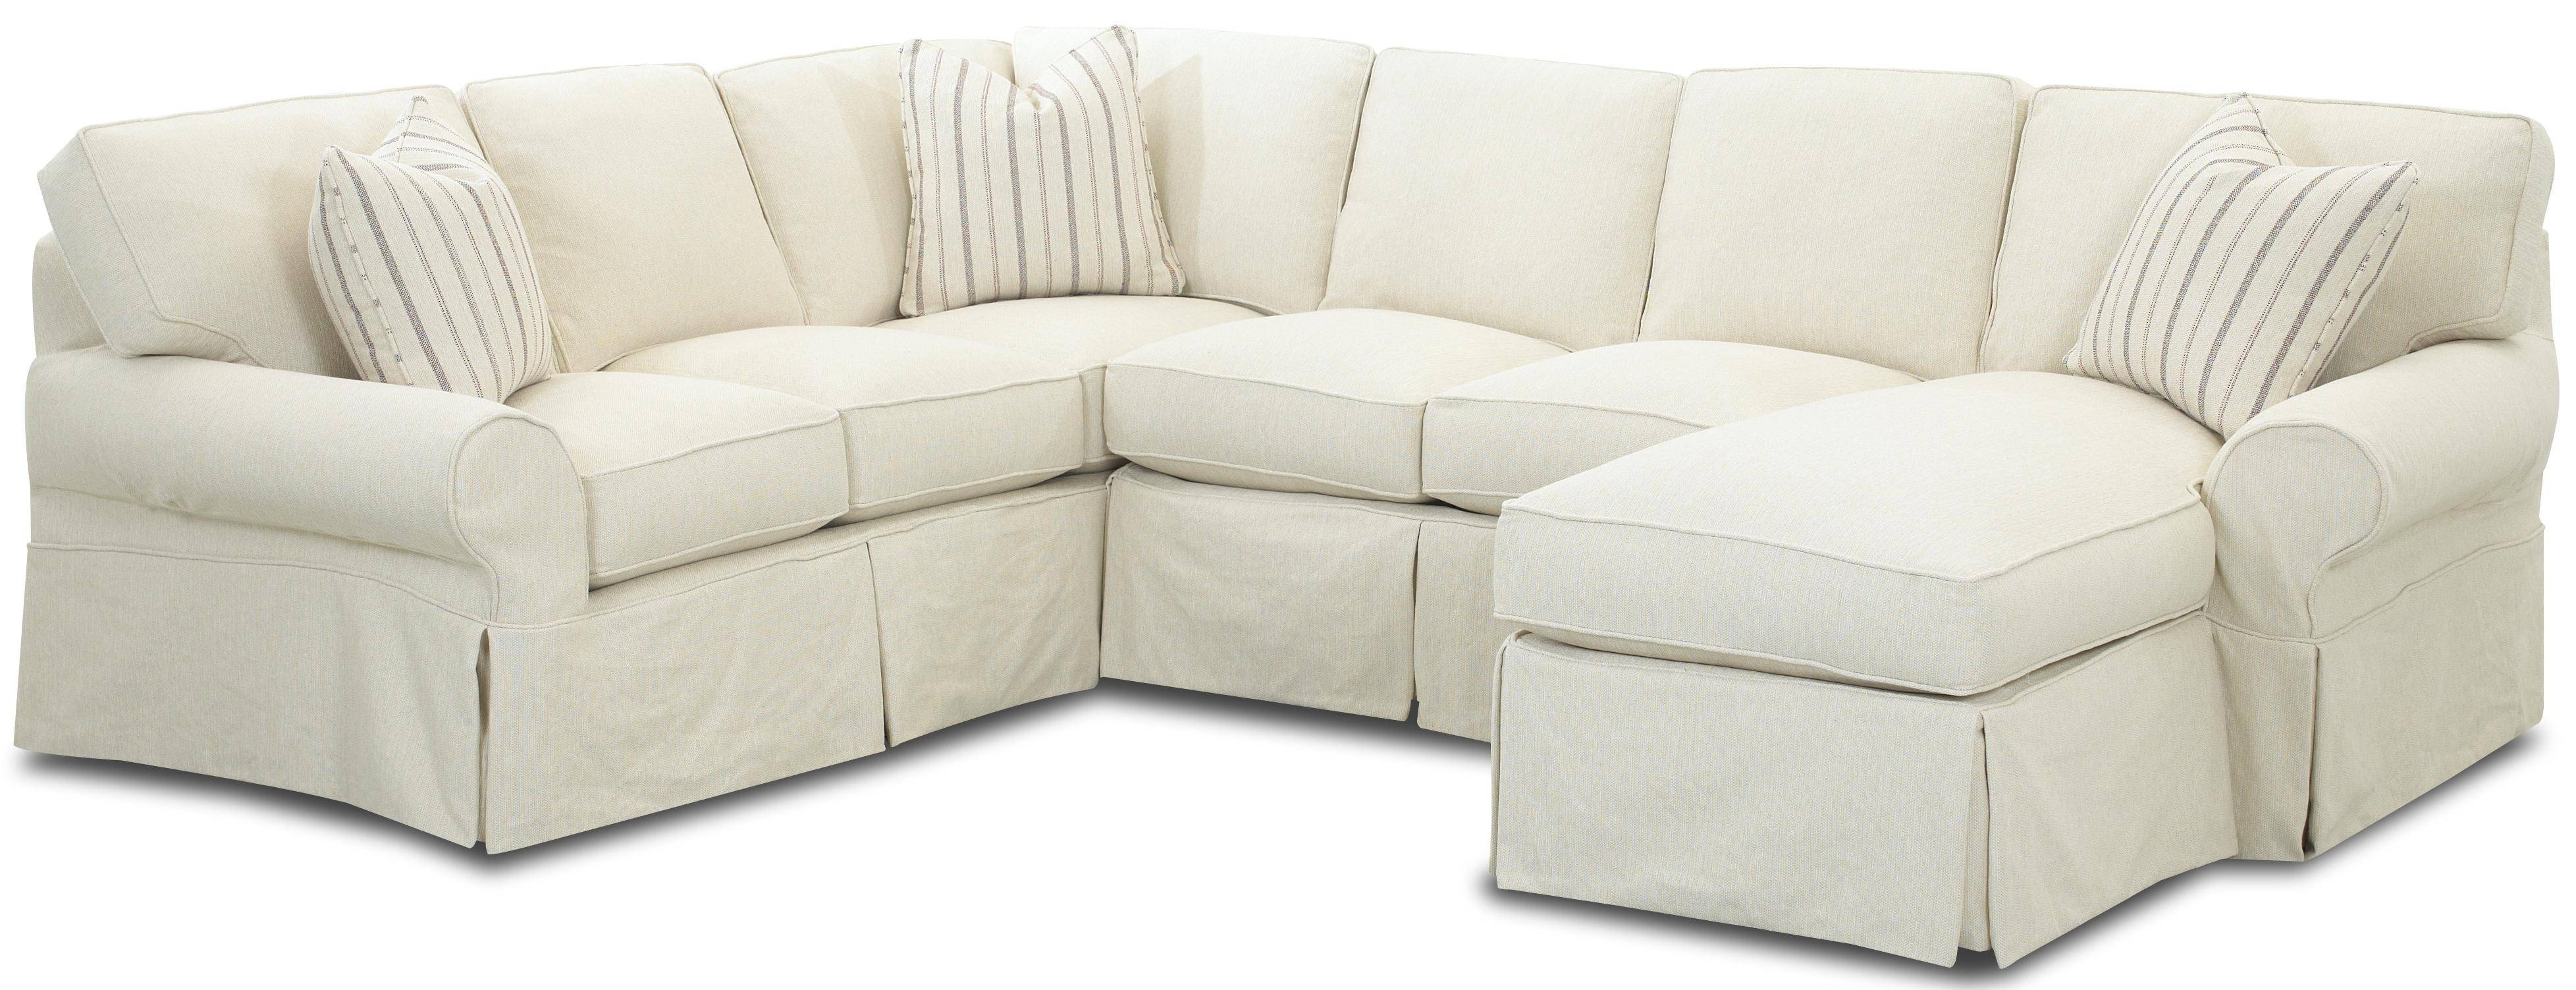 Furniture: Inspirational Slipcover Sectional Sofa For Modern for Sofas Cover For Sectional Sofas (Image 5 of 15)